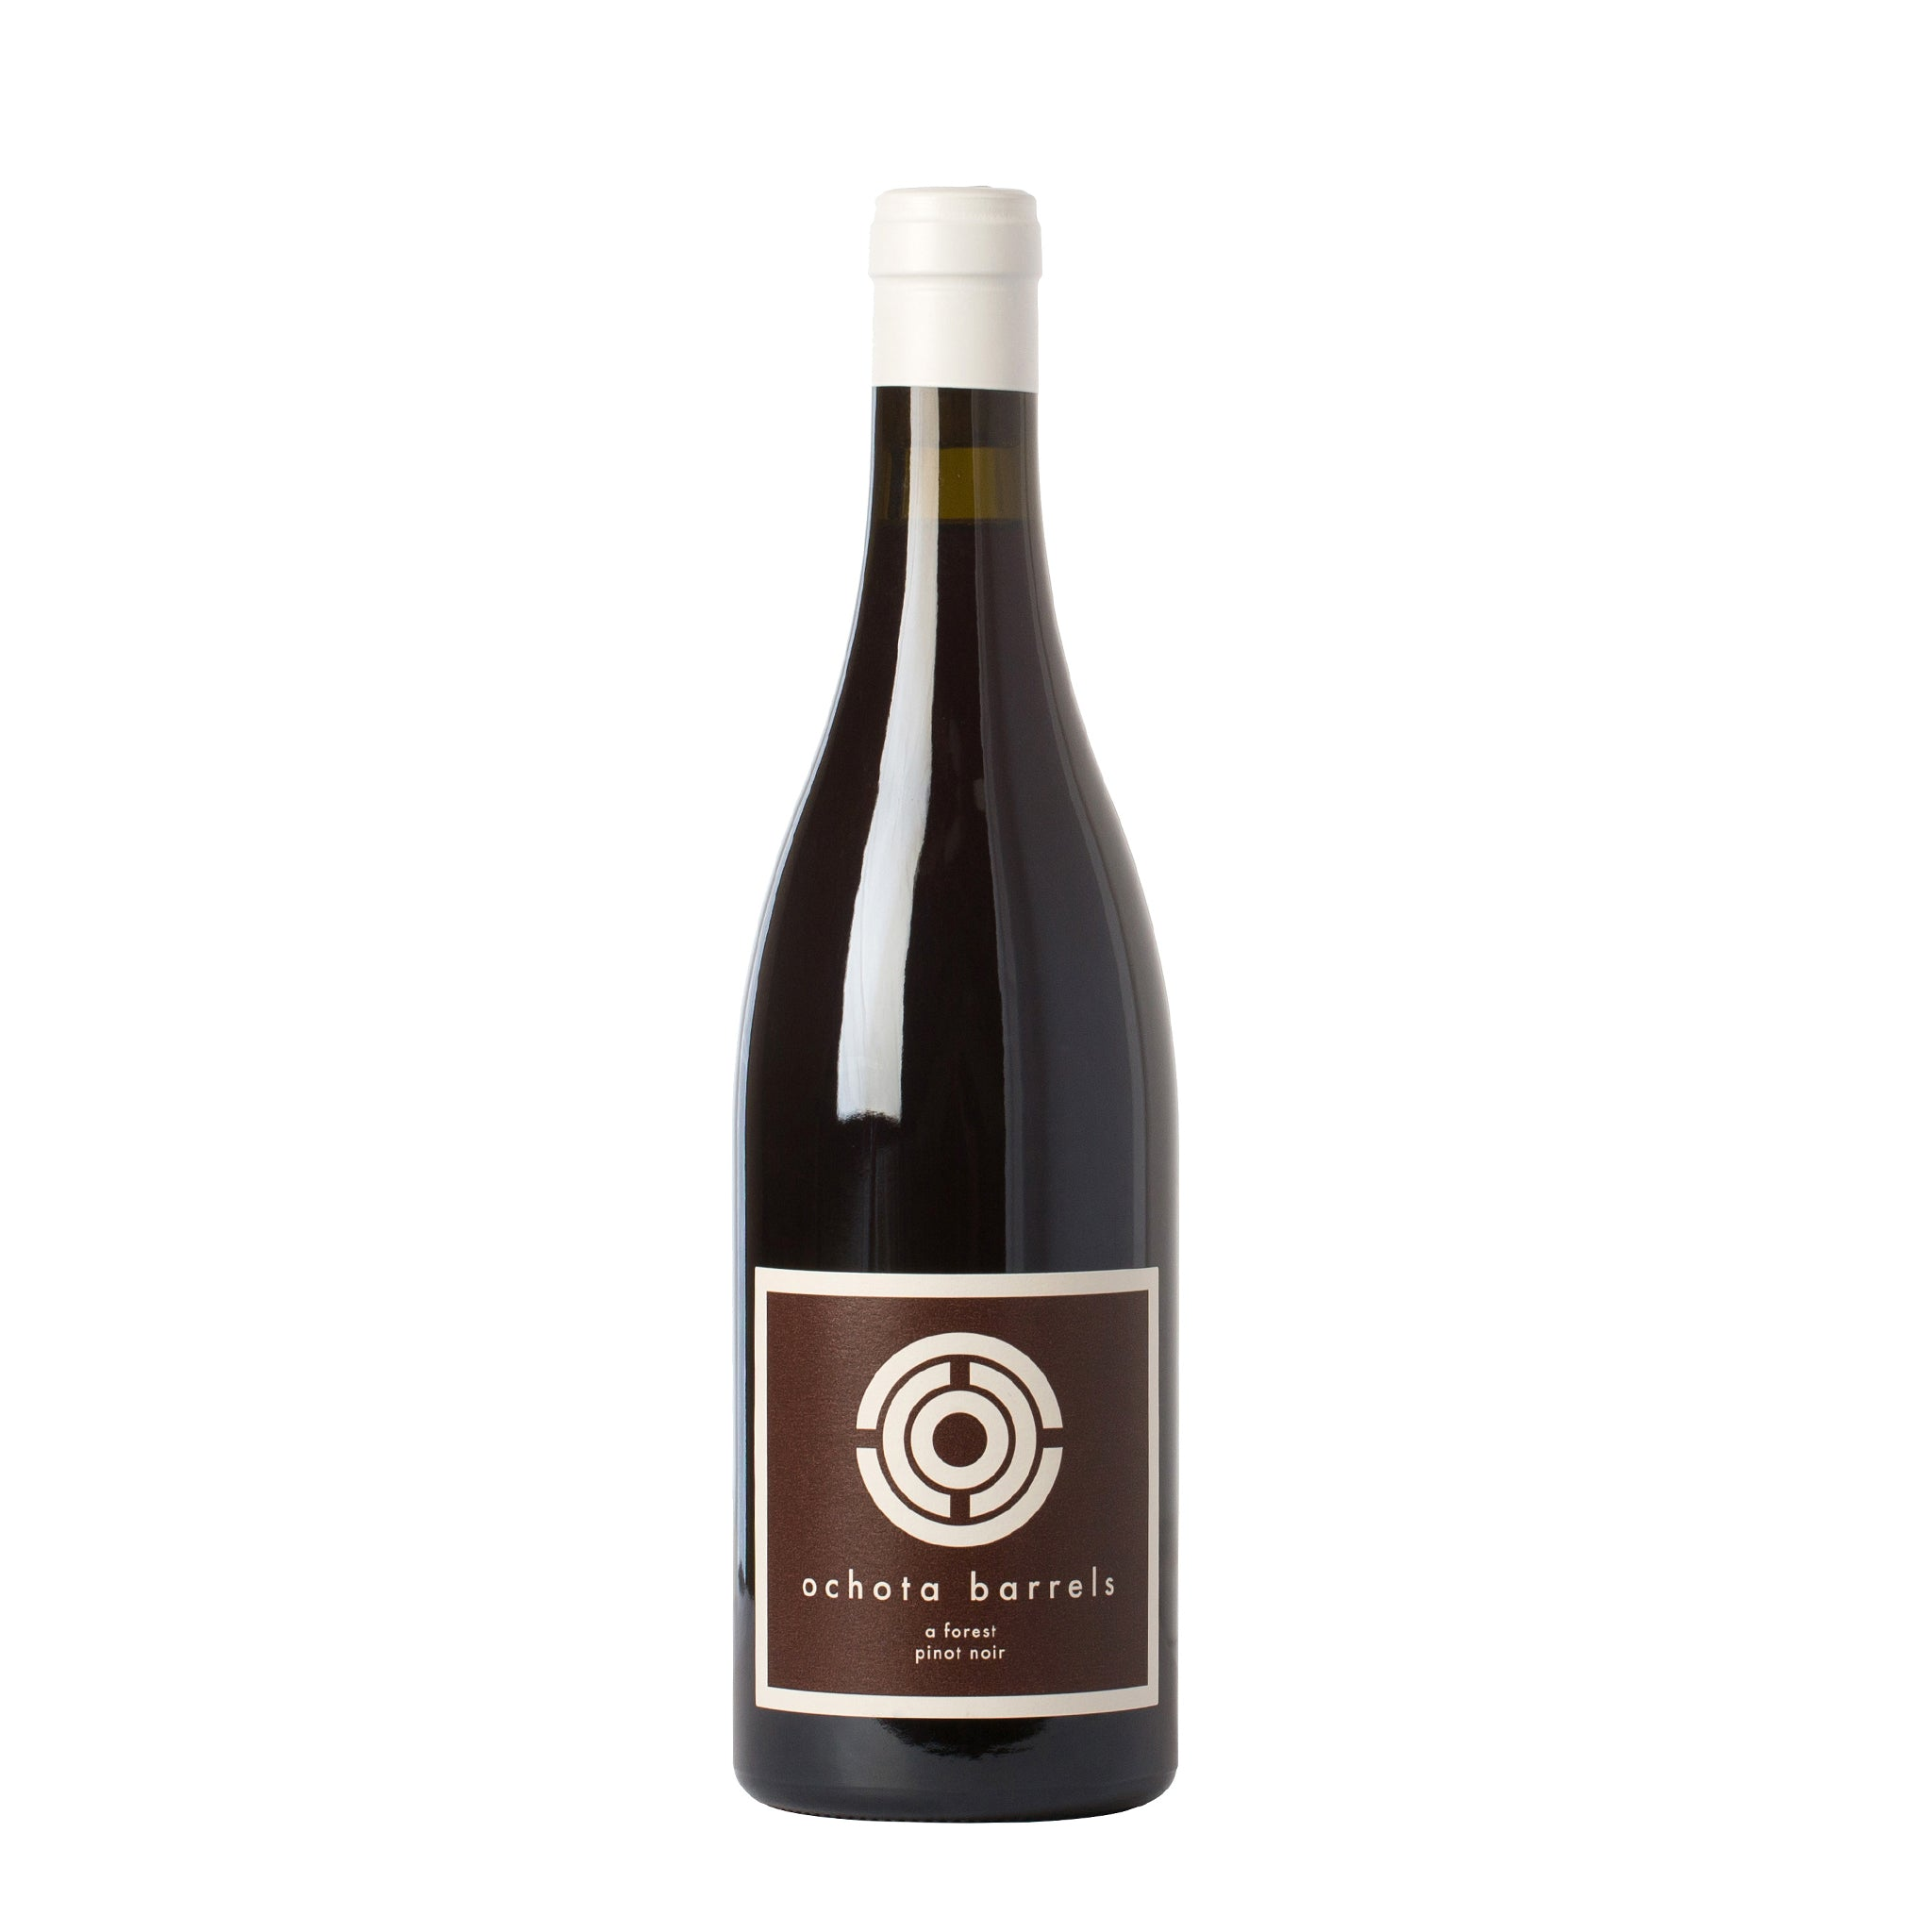 Ochota Barrels A Forest Pinot Noir 2019 750ml